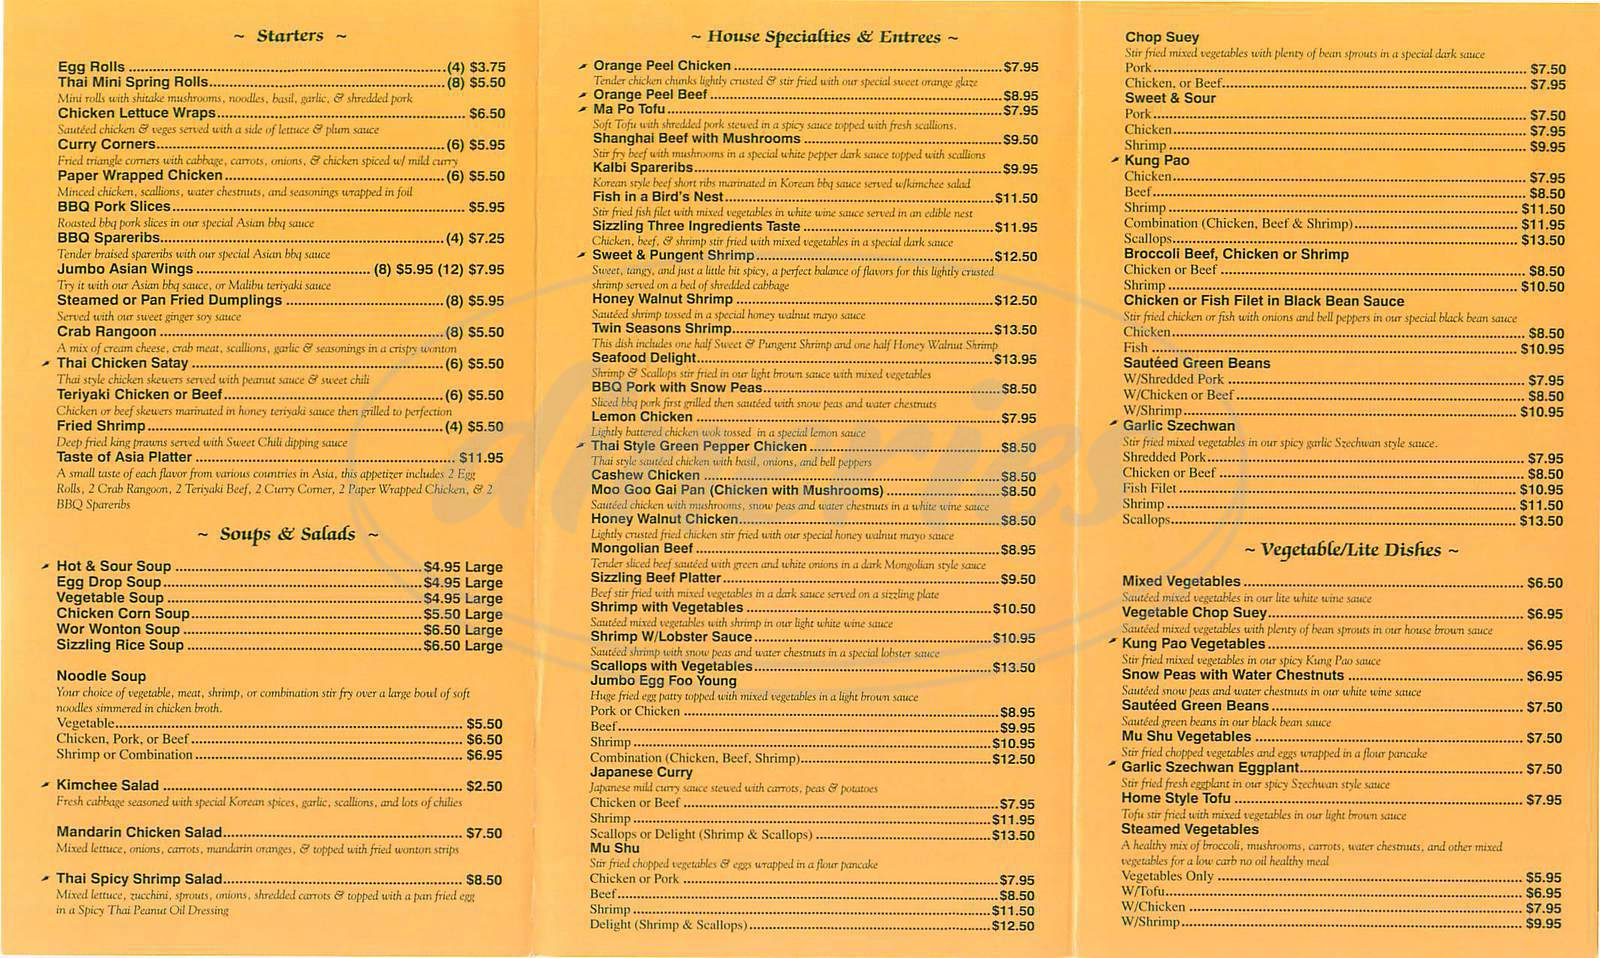 menu for East Winds Asian Cuisine